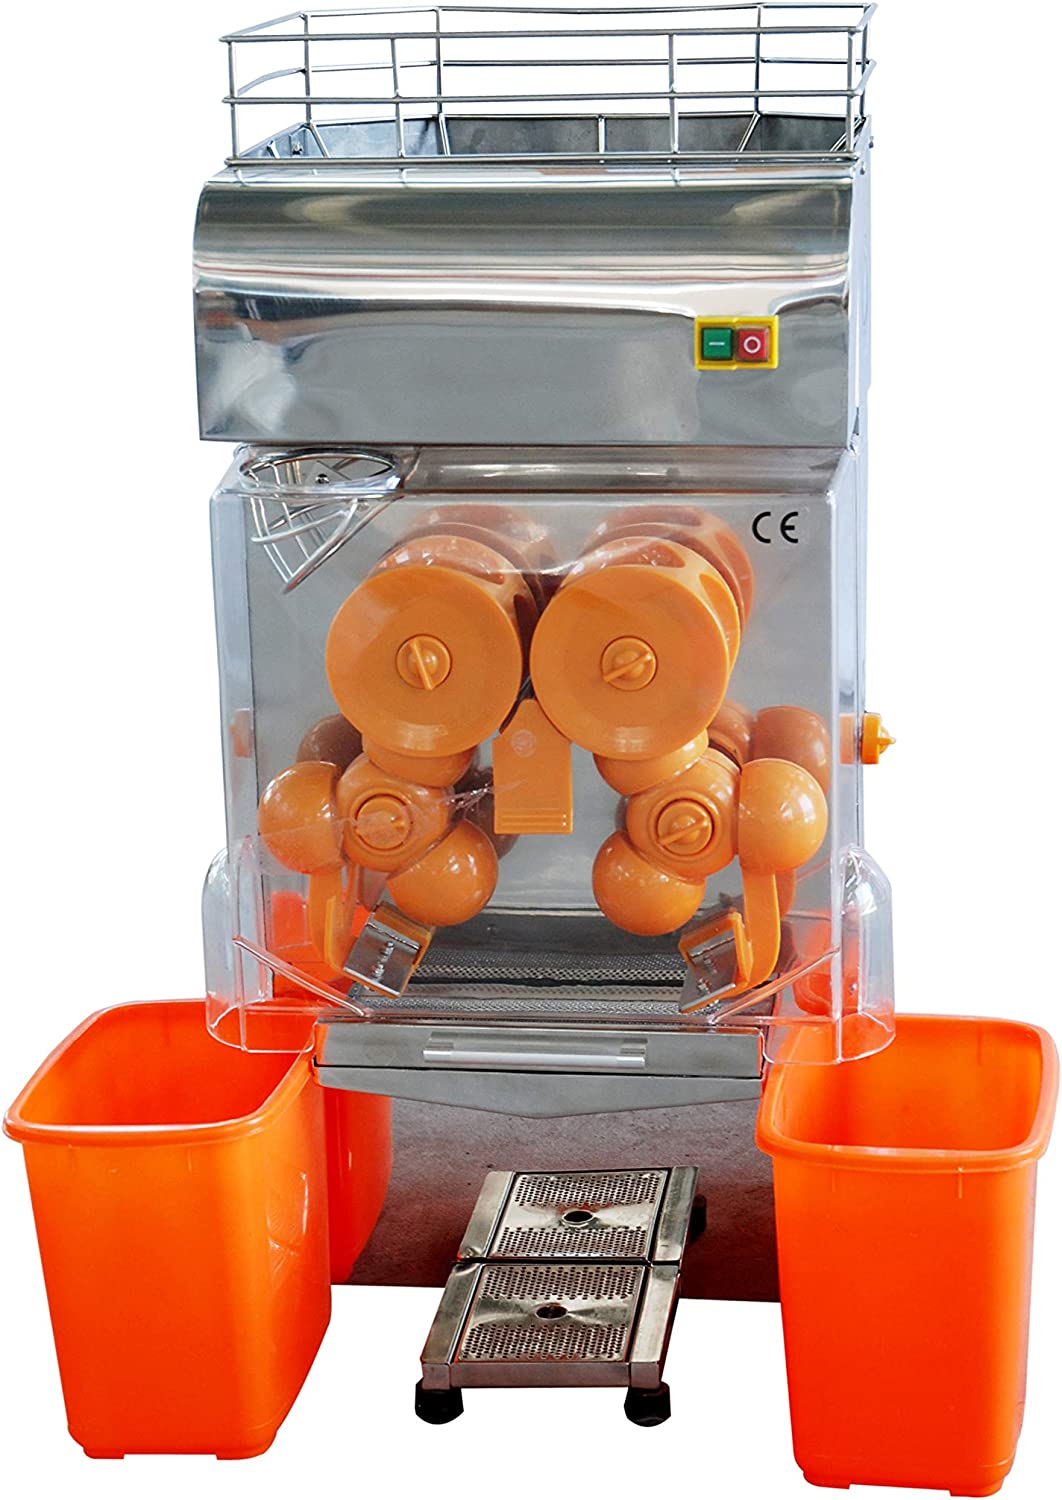 Orange Juicer Orange Squeezer juicer machine Electric Fruit Juicer Machine Commercial Orange Juicer Auto Feed Stainless Steel (CE&ETL certified)